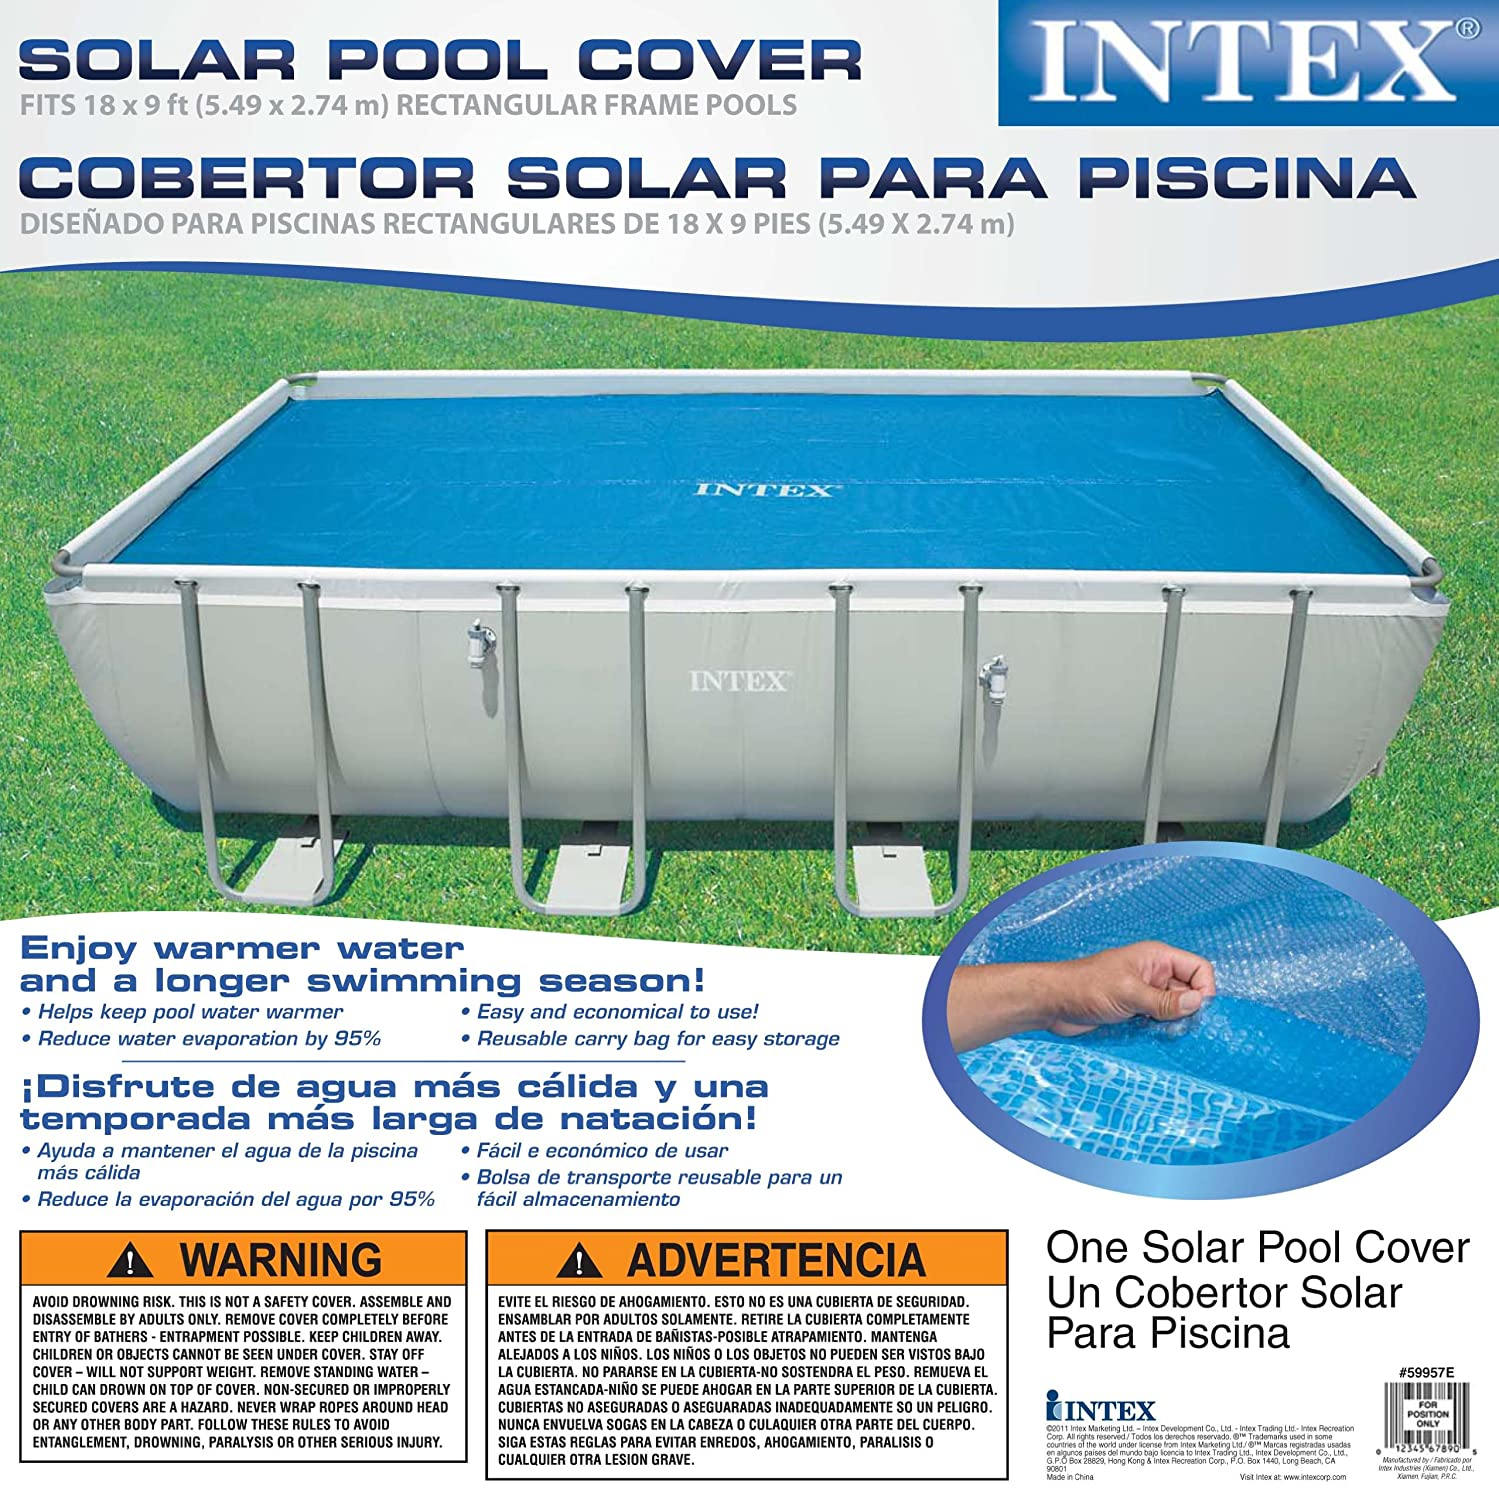 amazoncom intex solar cover for 18ft x 9ft rectangular frame pools measures 17 8 x 8 4 swimming pool covers patio lawn garden